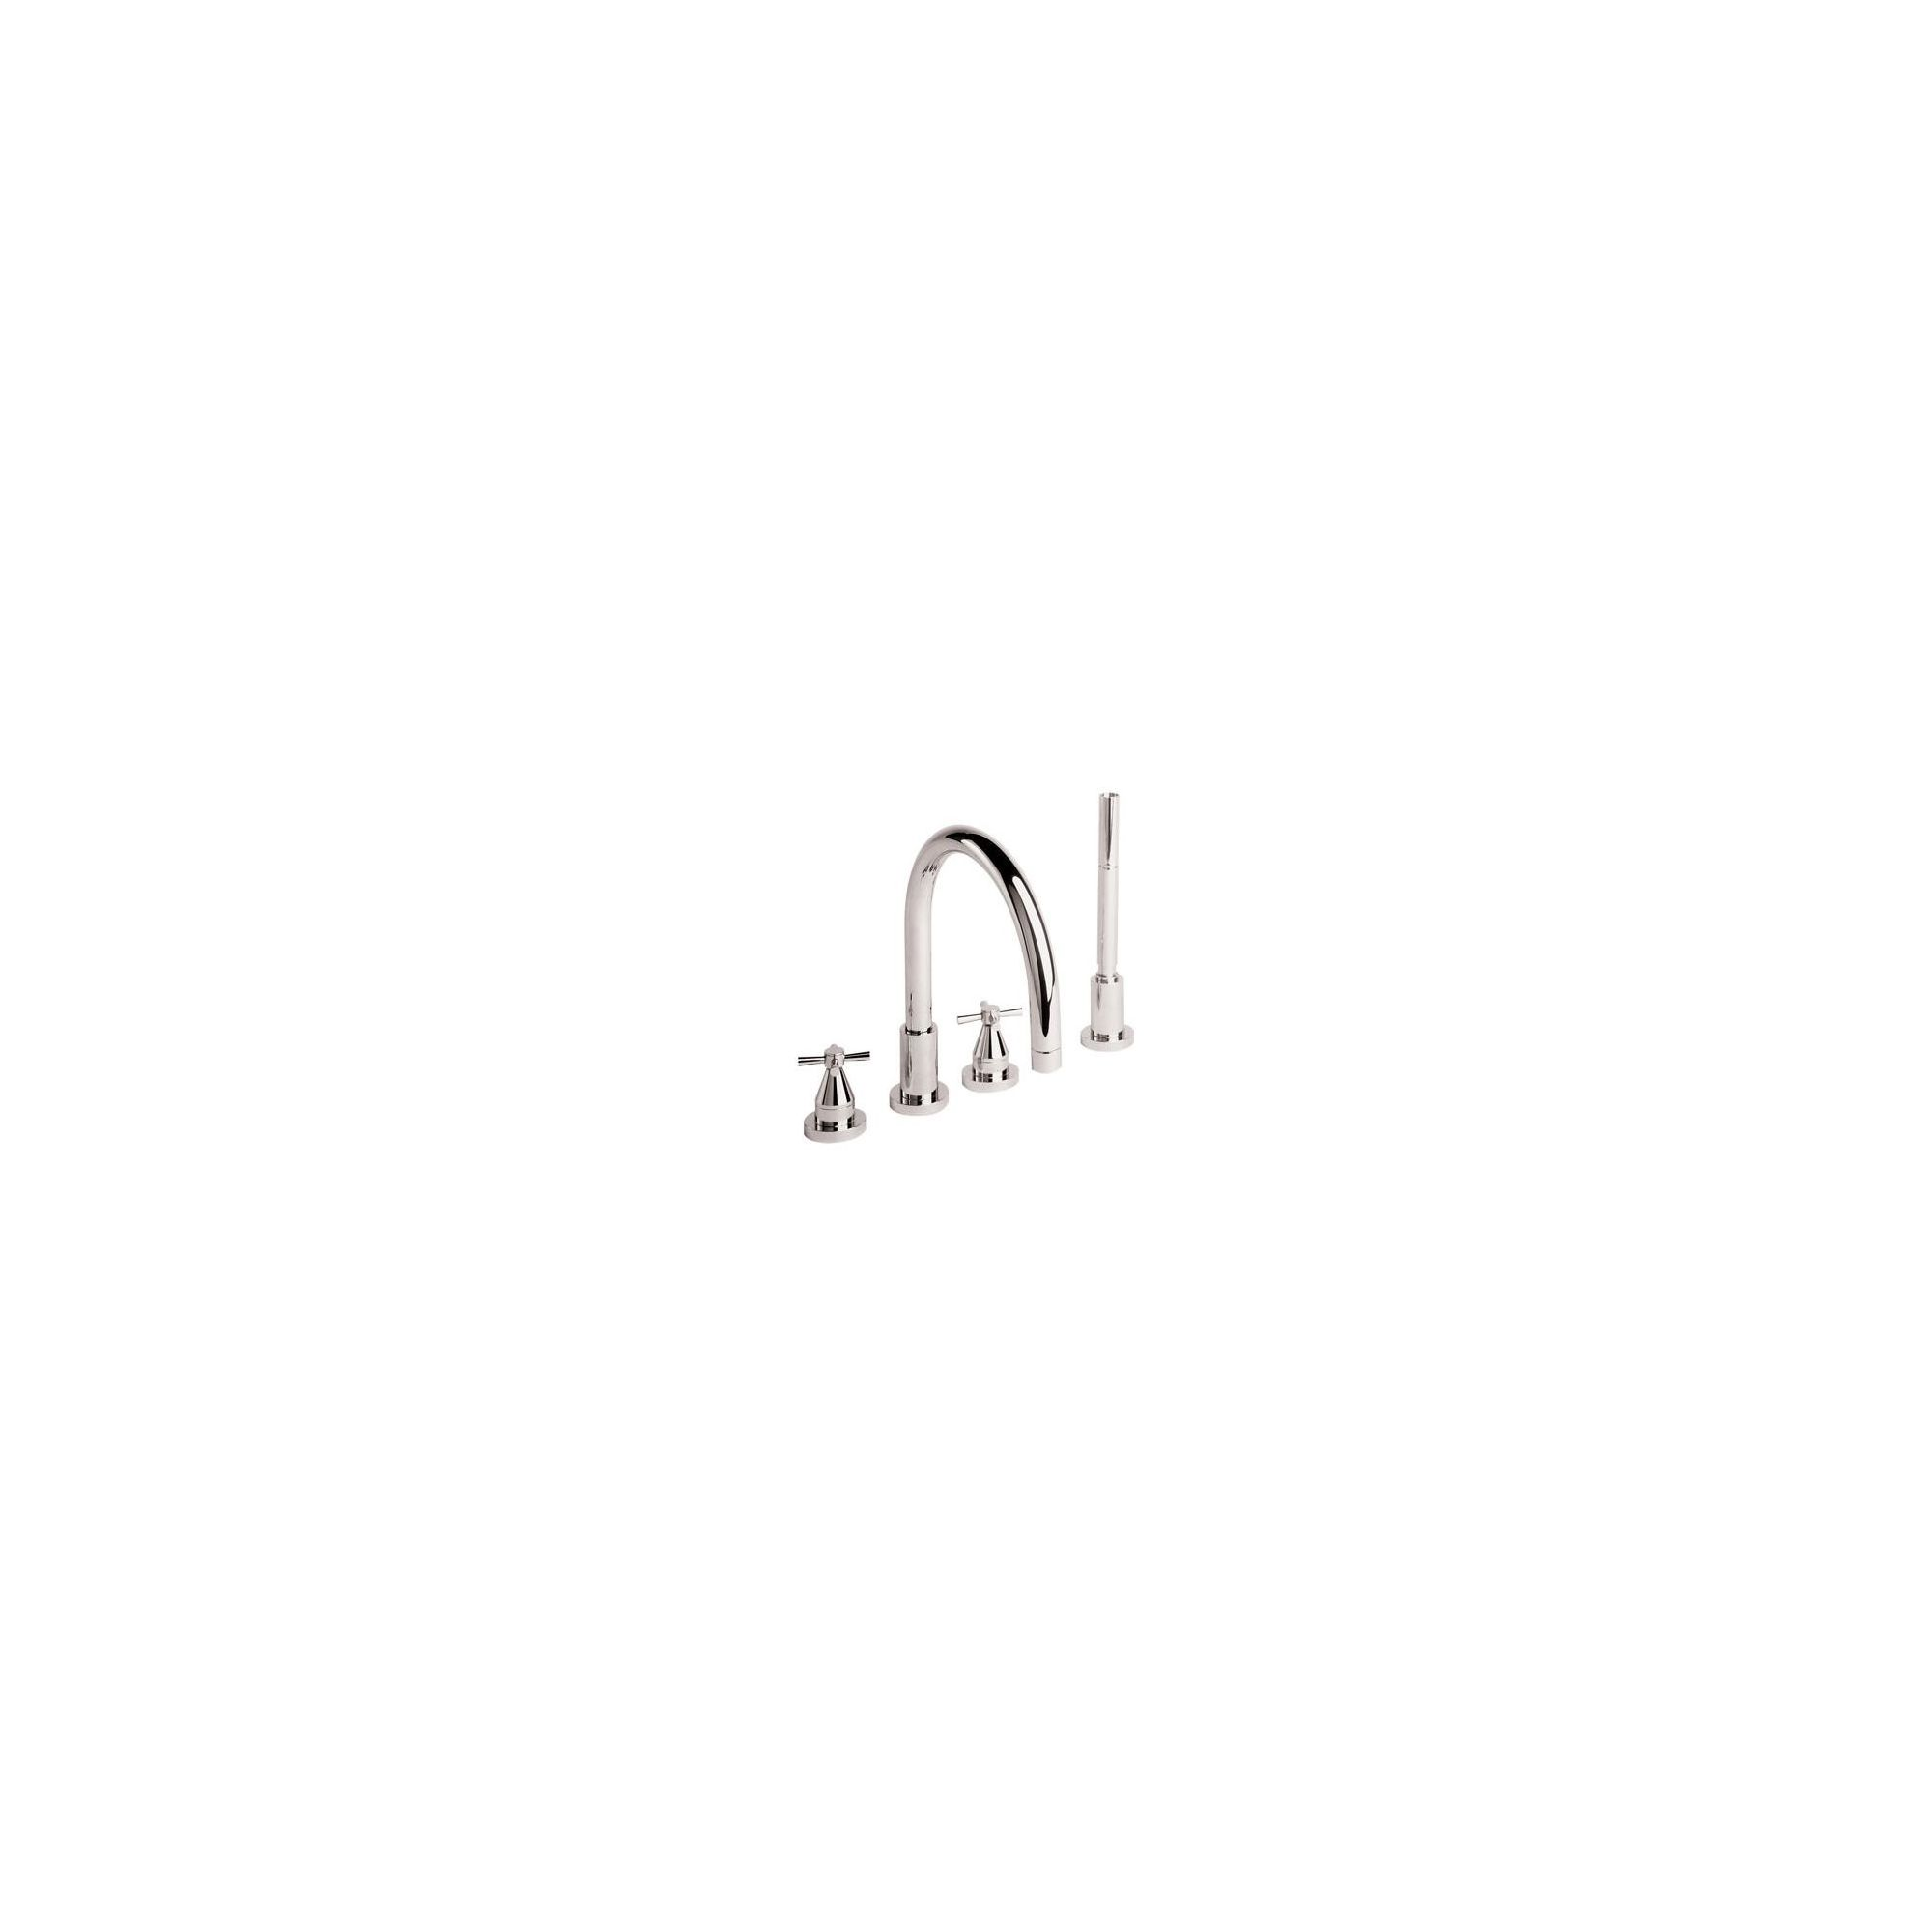 Twyford Rival 4 Hole Bath Shower Mixer Tap Chrome at Tesco Direct